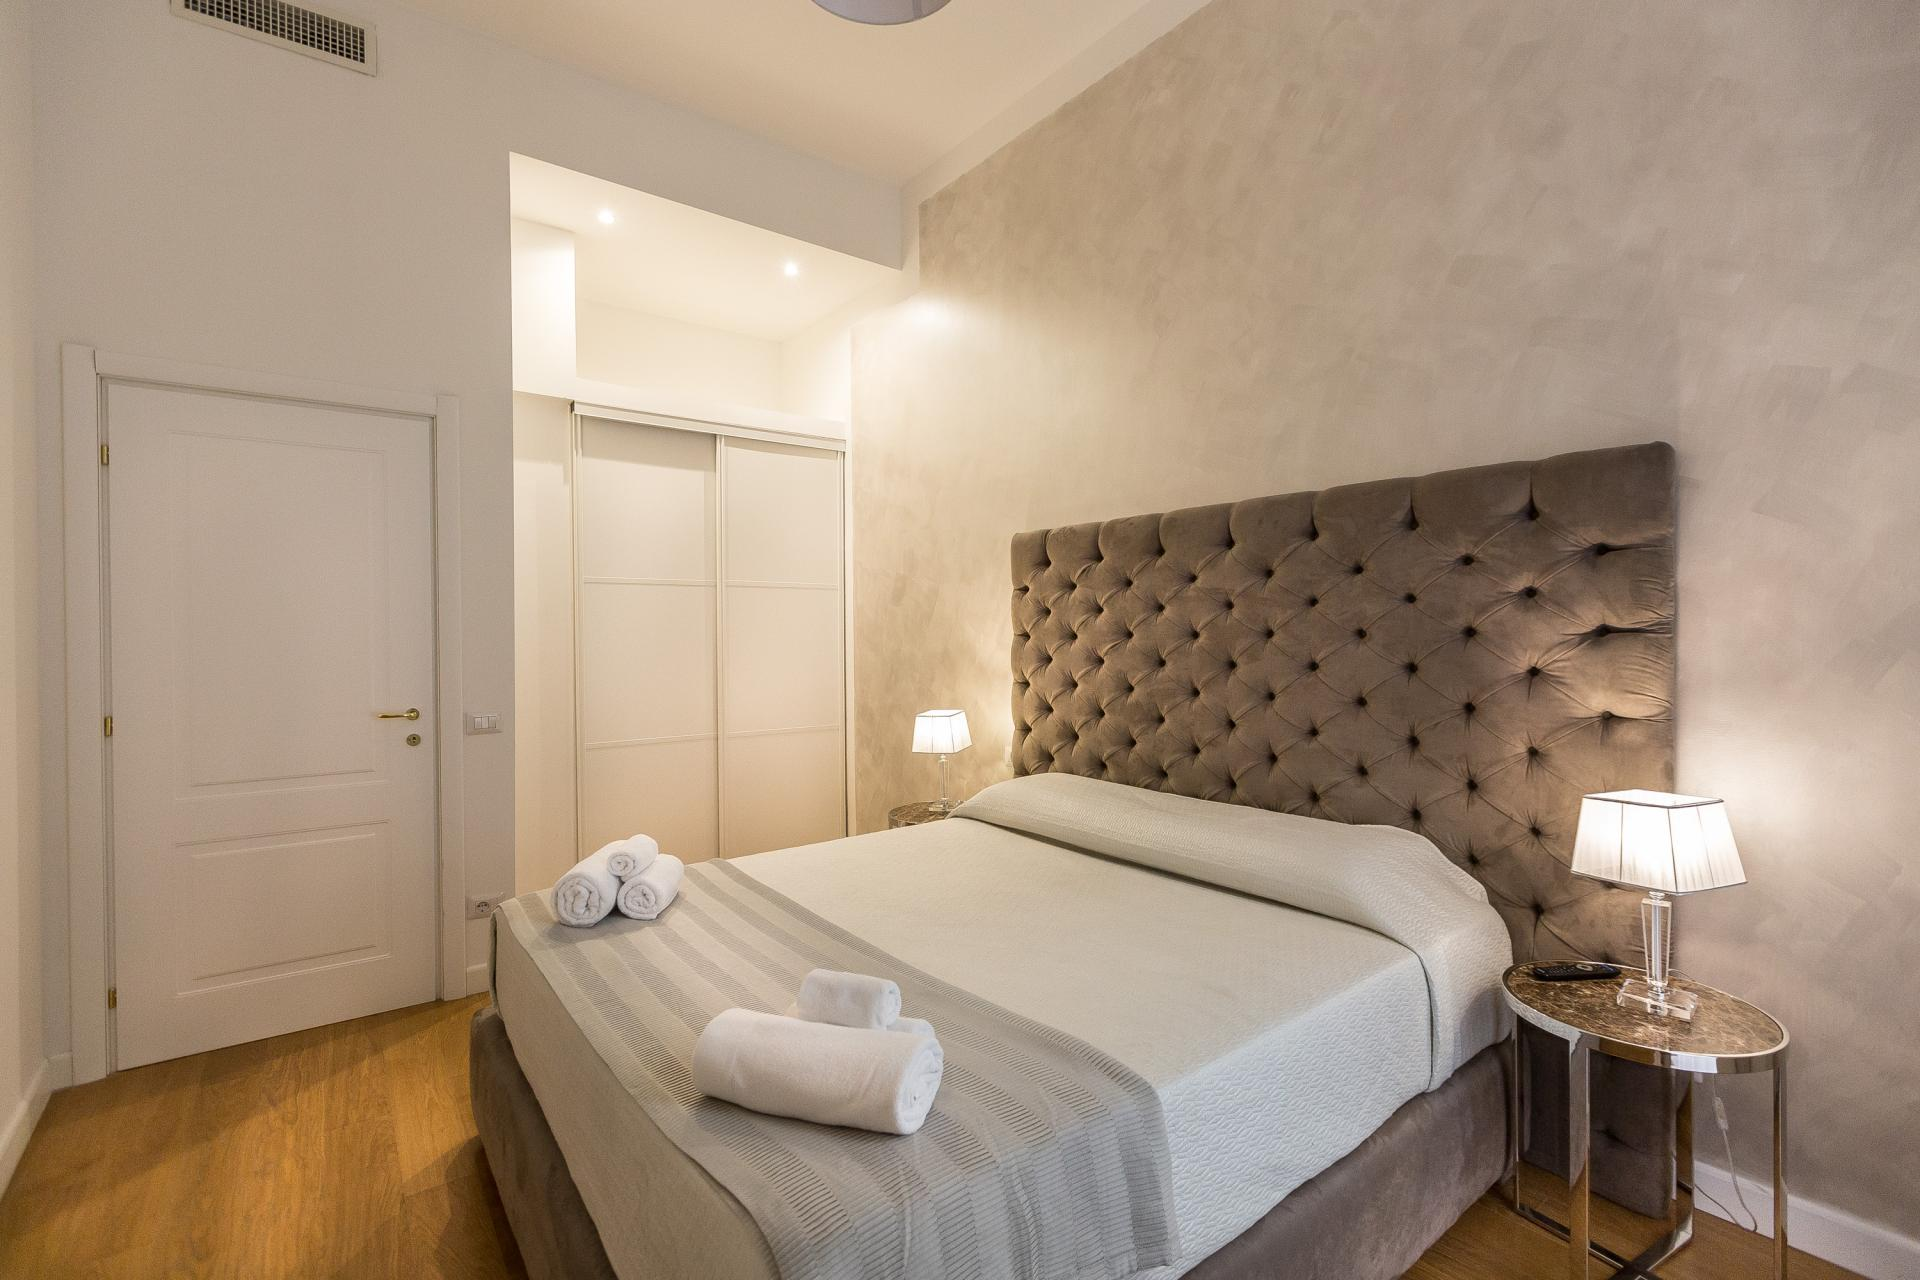 Bed at Velvet Vittoriano Apartment, Municipio I, Rome